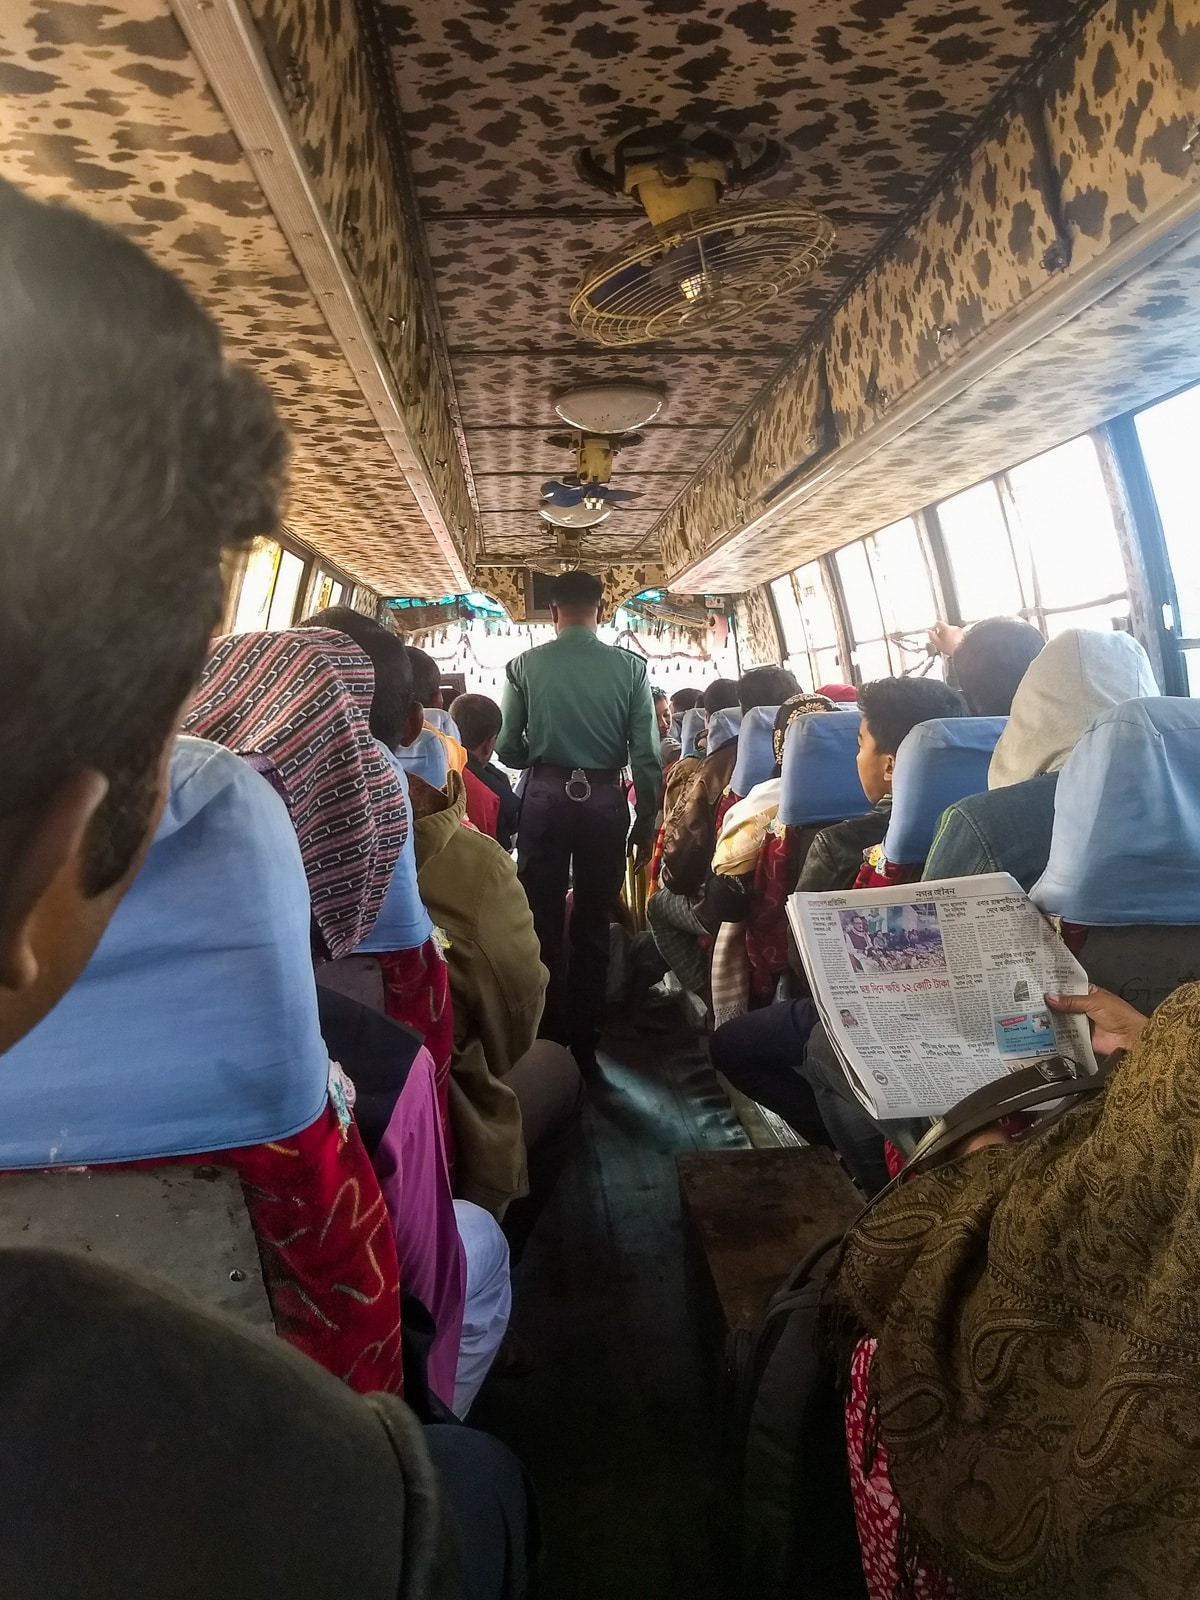 Crossing the India - Bangladesh border at Petrapole and Benapole - Police officer checking the bus - Lost With Purpose travel blog